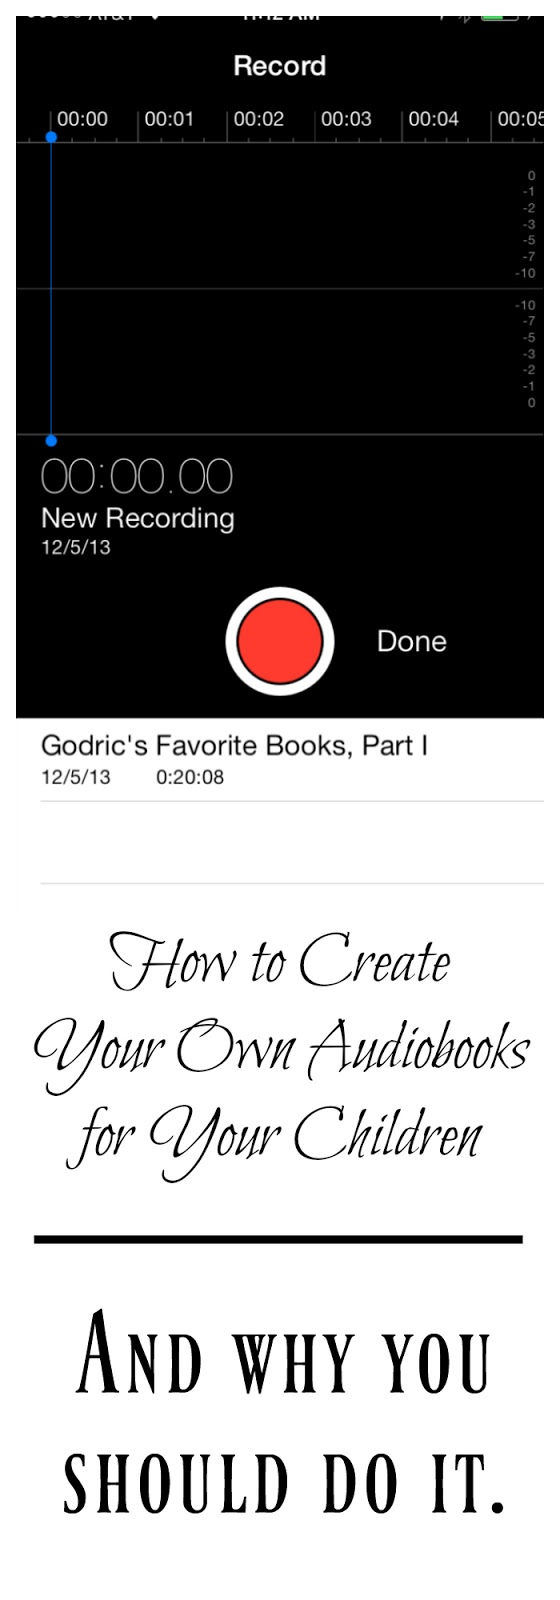 DIY Audiobooks for Children